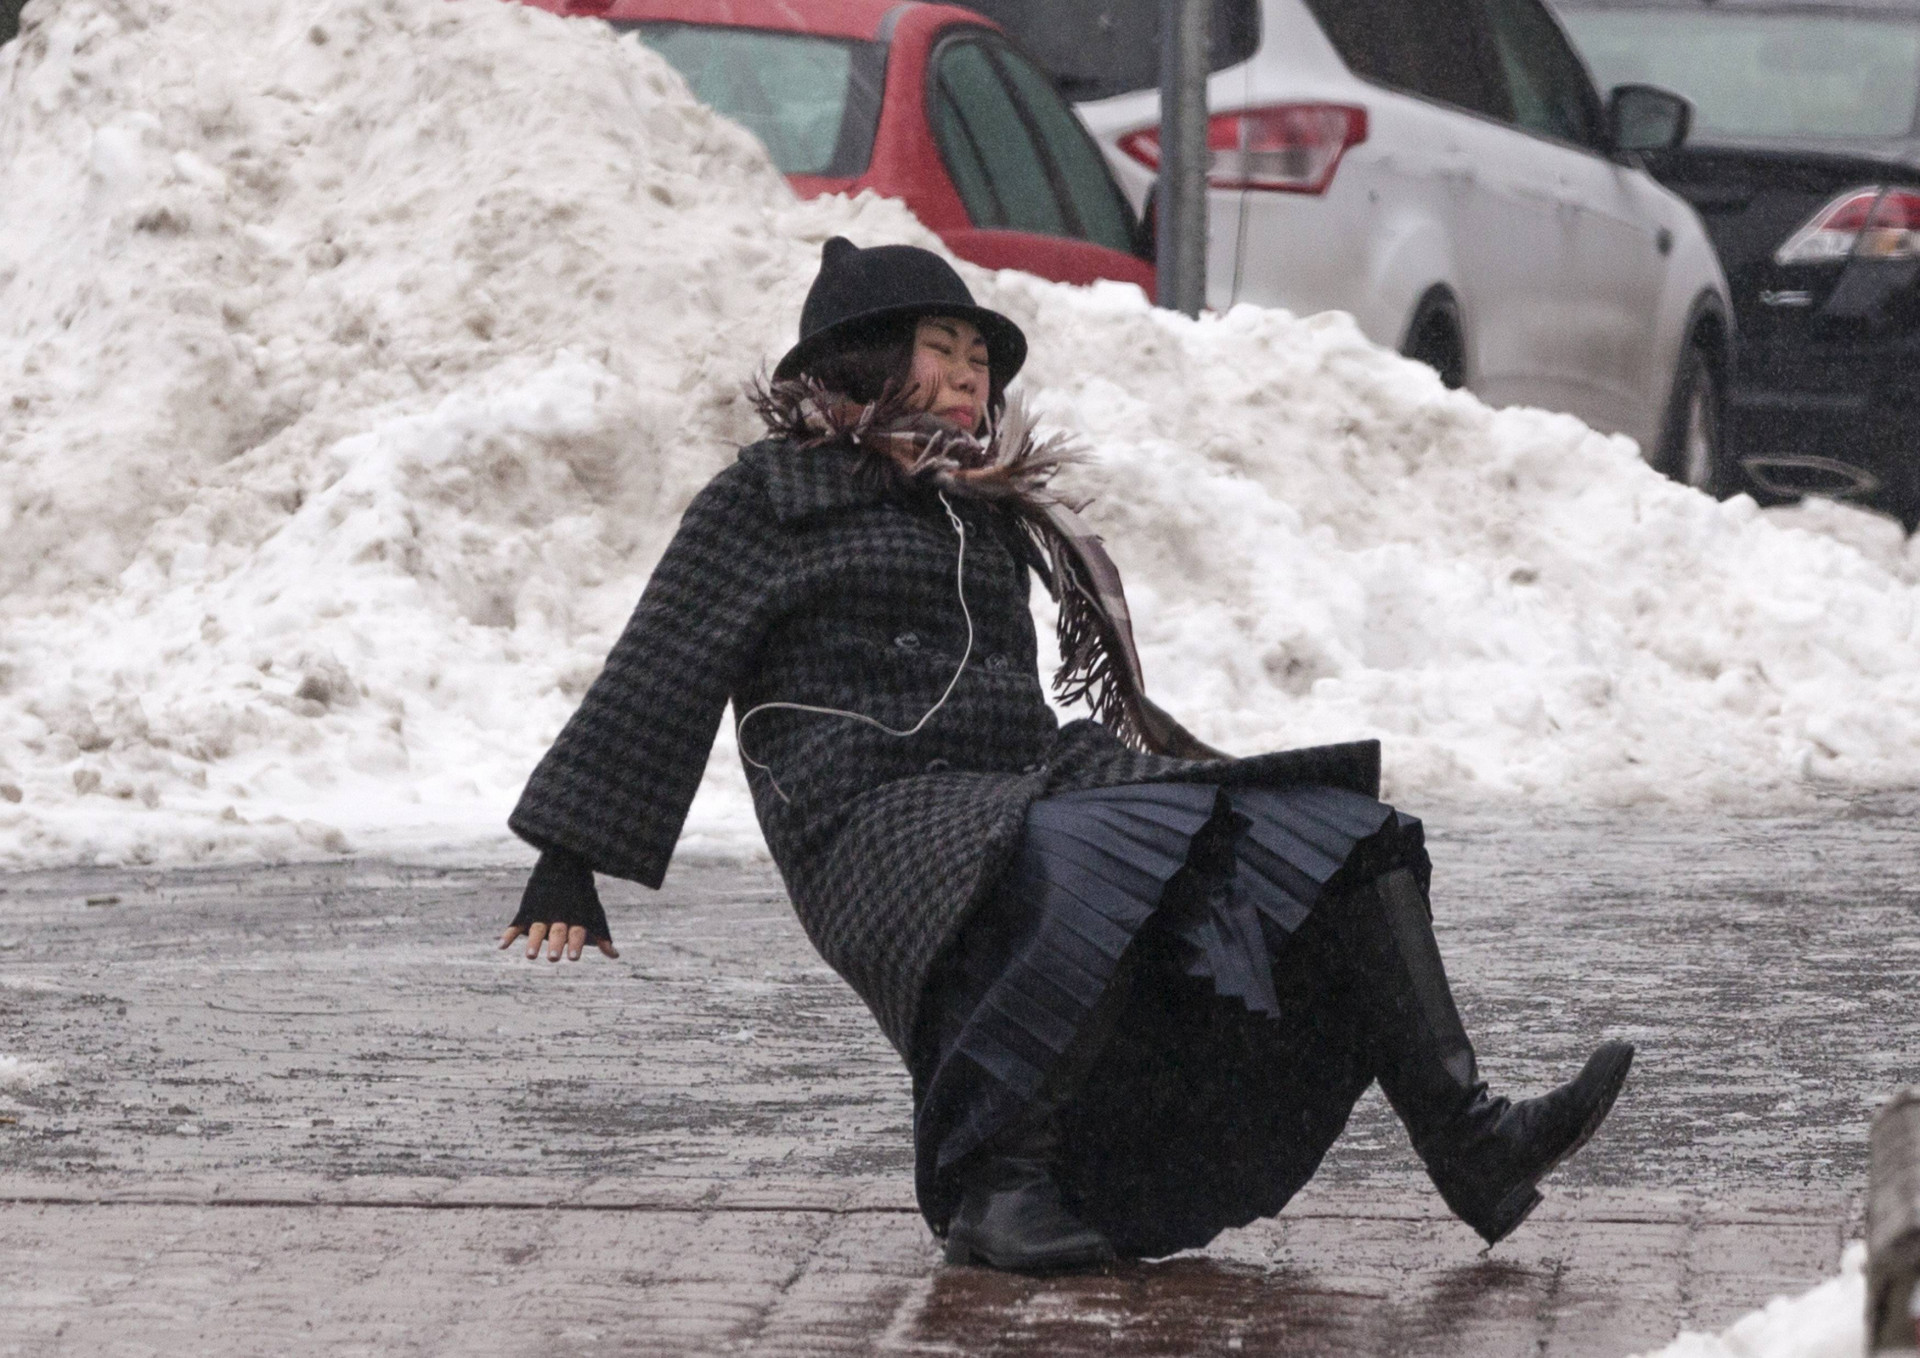 https://www.reddit.com/r/photoshopbattles/comments/1un9aq/woman_slipping_on_ice_in_this_winter_freeze/